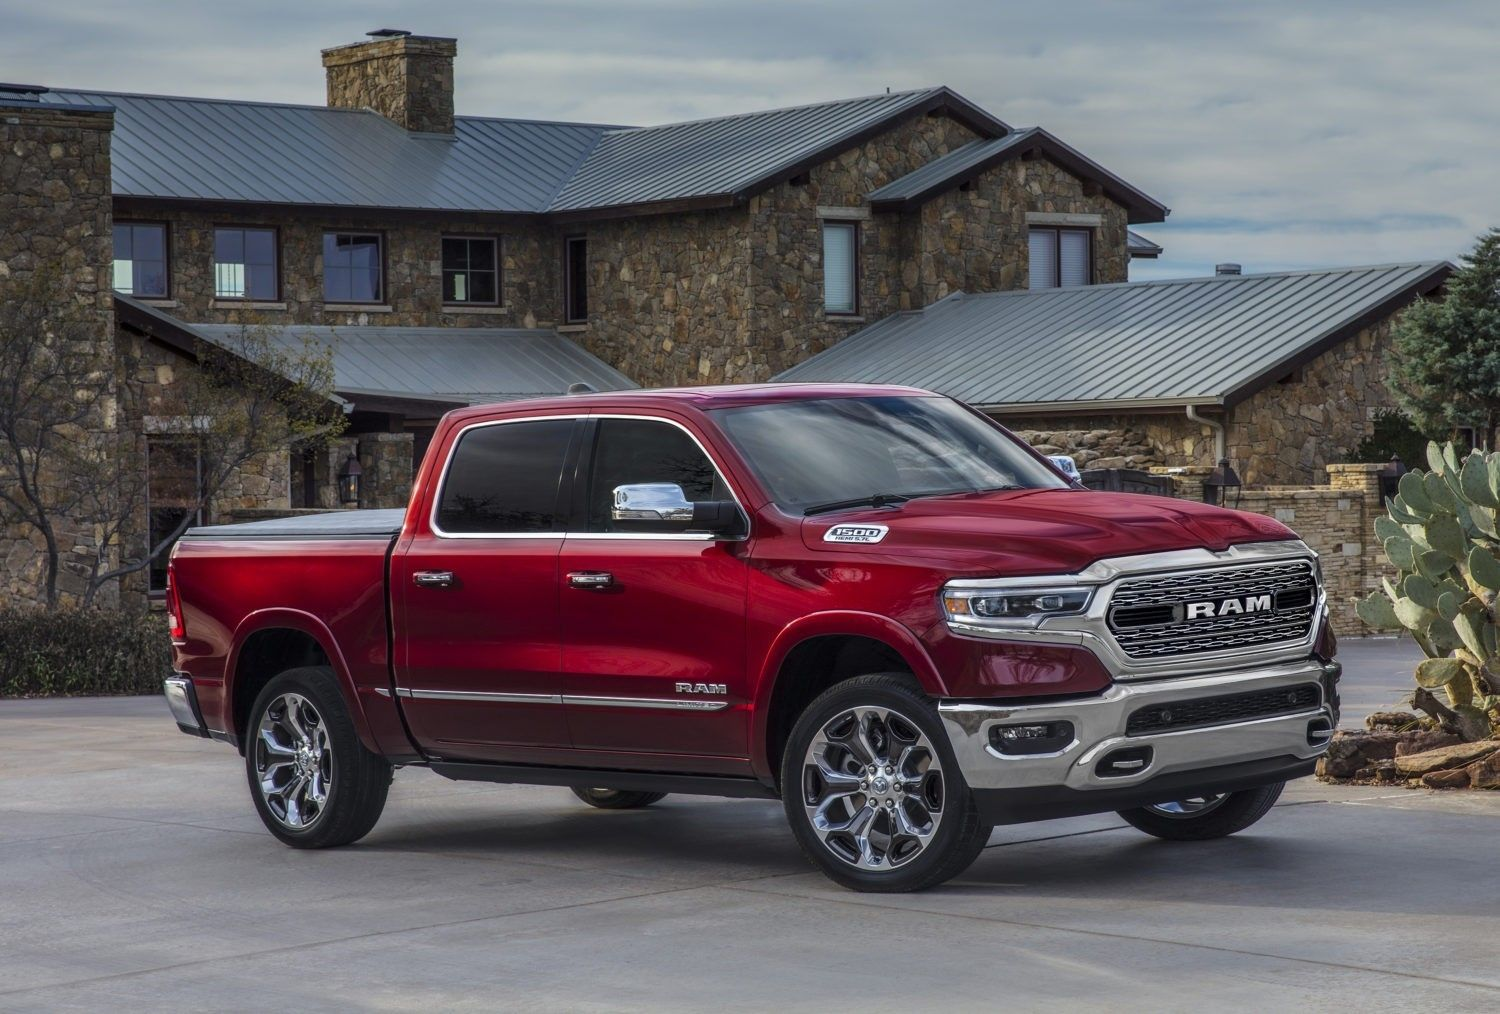 2019 Dodge Laramie Longhorn Price Car Review 2019 Ram Trucks Dodge Ram Pickup Dodge Cummins